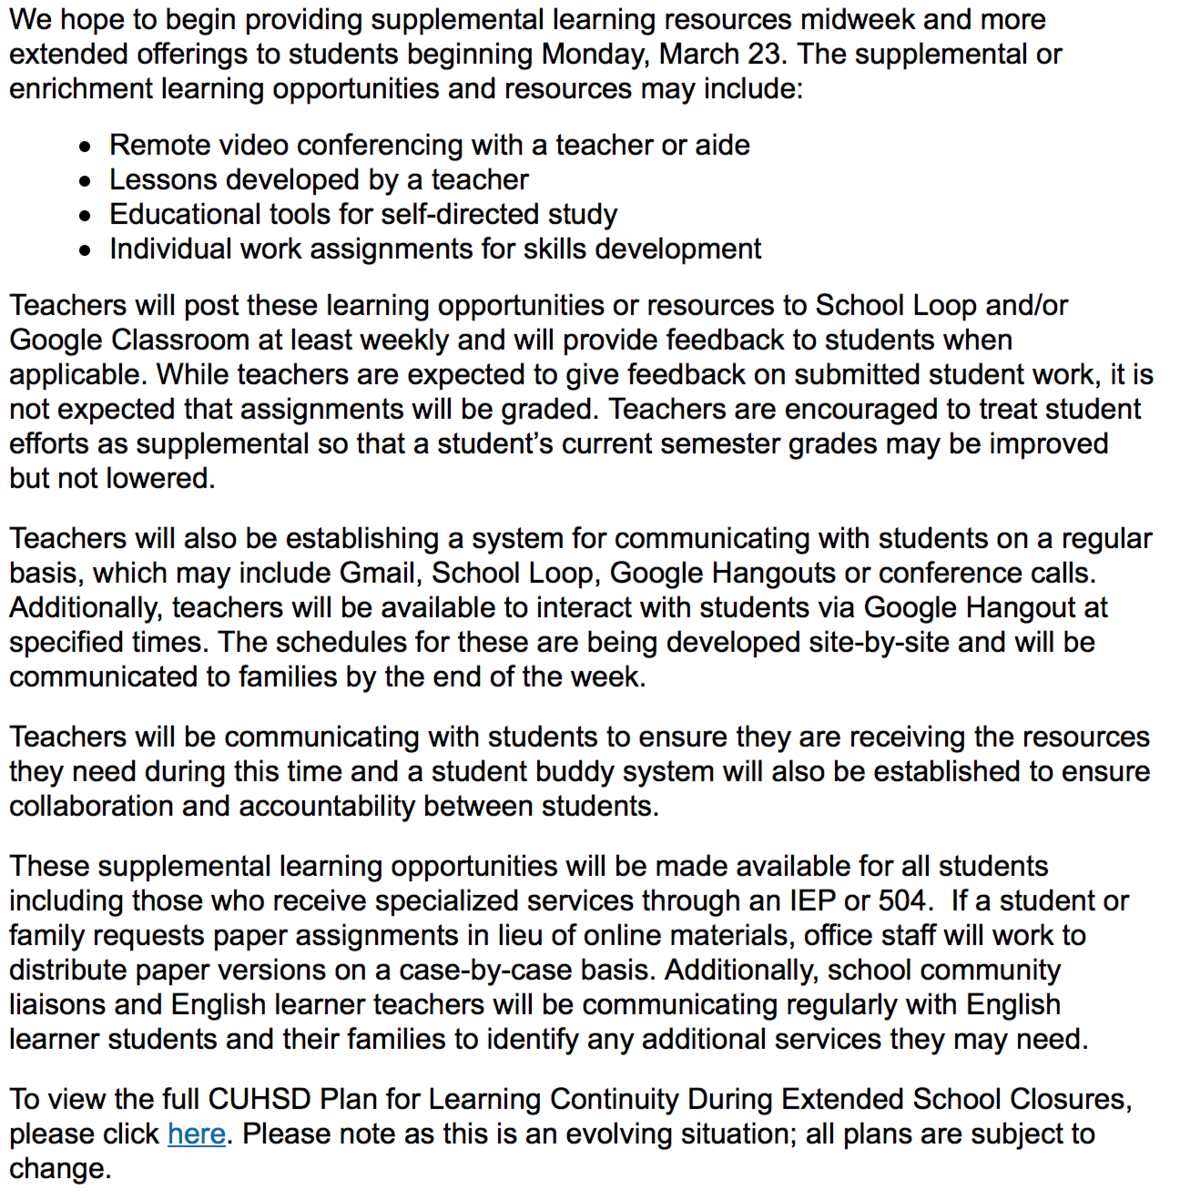 image of district supplemental learning opportunities for students during coronavirus closure